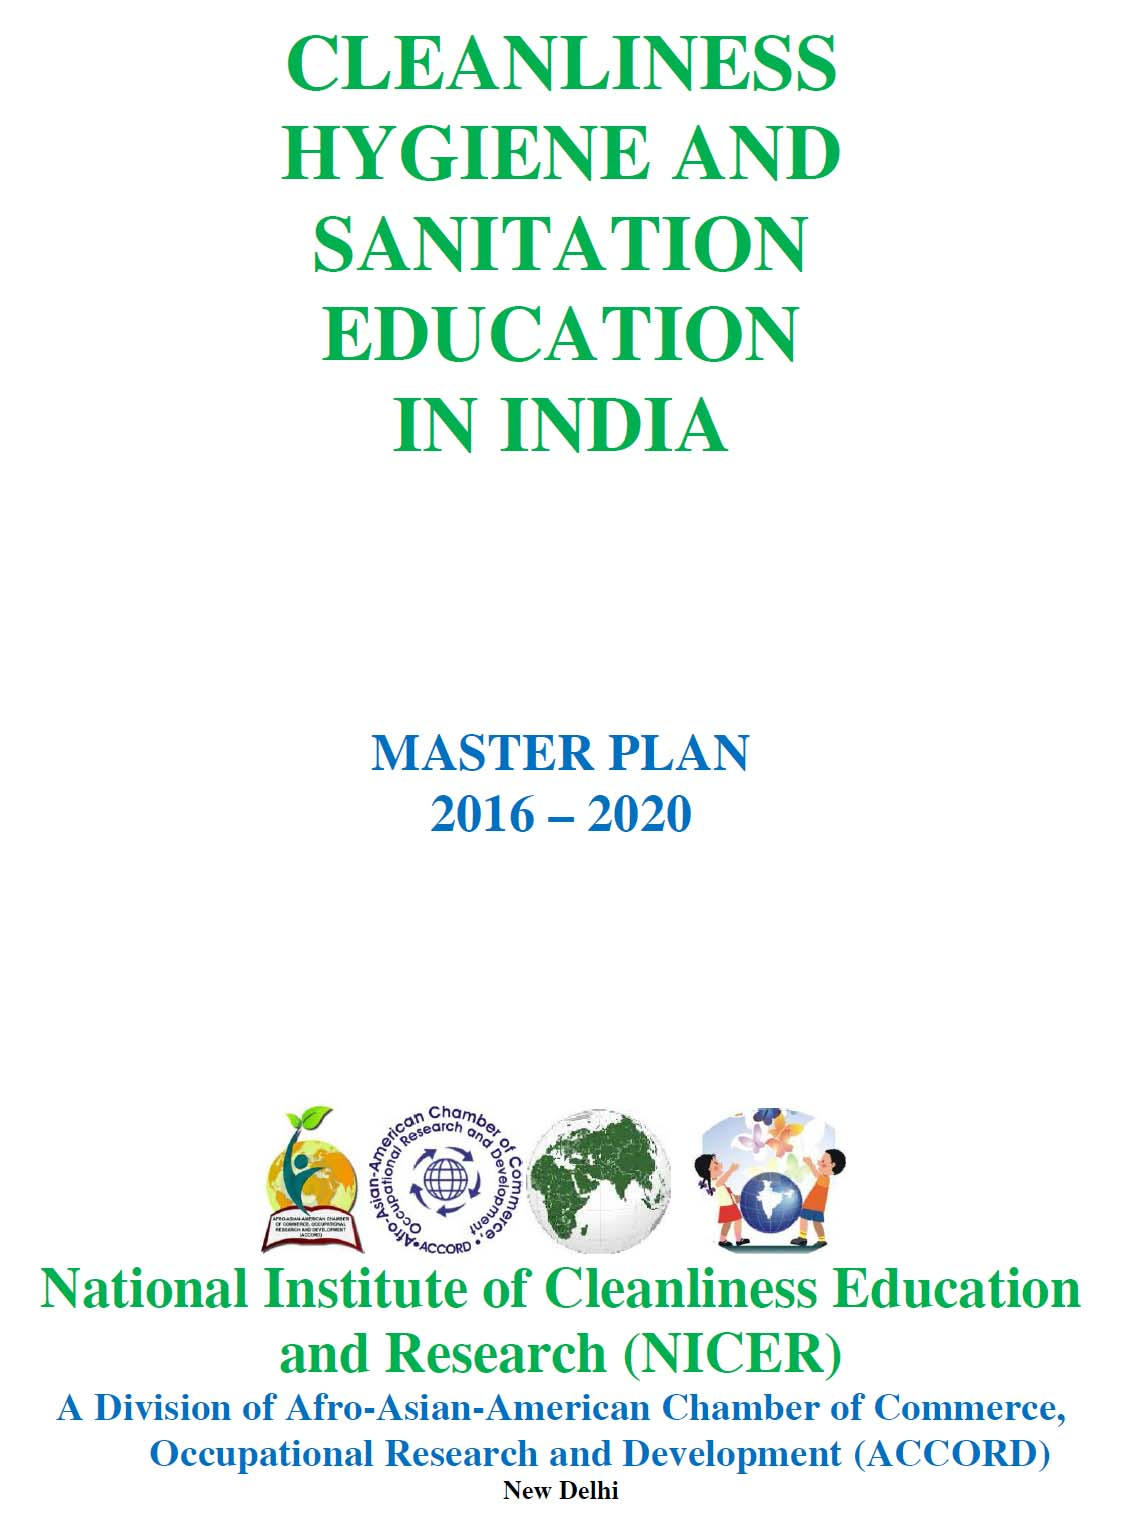 NATIONAL INSTITUTE OF CLEANLINESS EDUCATION AND RESEARCH NICER